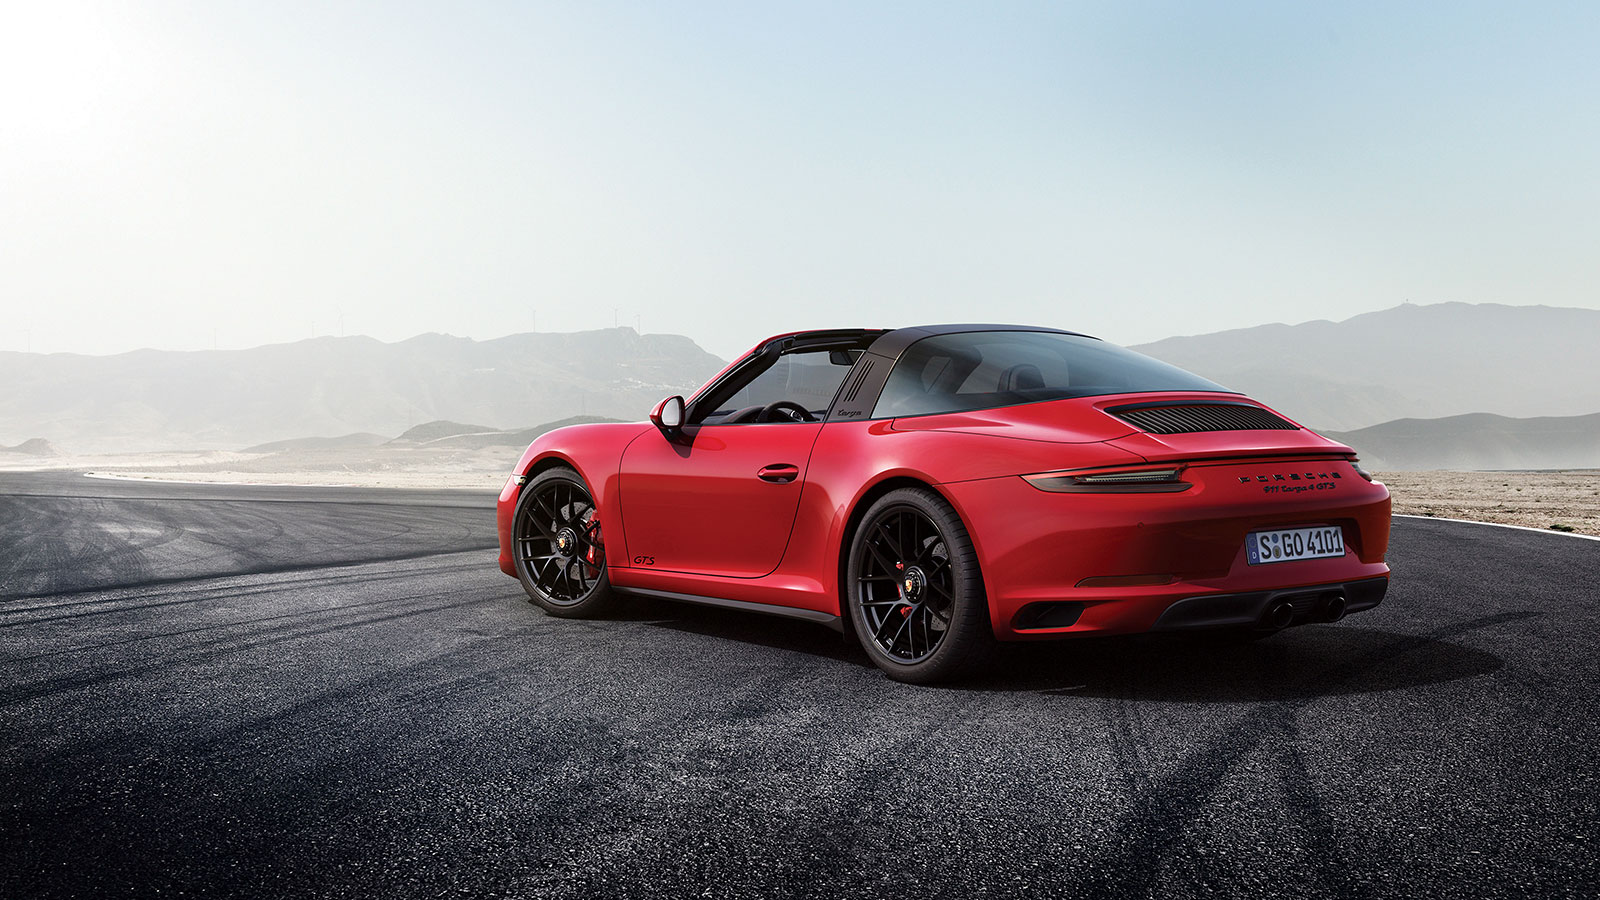 A Driving Dream Porsche 911 Targa 4 Gts Luxury Travel Magazine Luxury Travel Features News Reviews Interviews Hotels Resorts Luxury Fashion Jewellery Supercars And Yachts